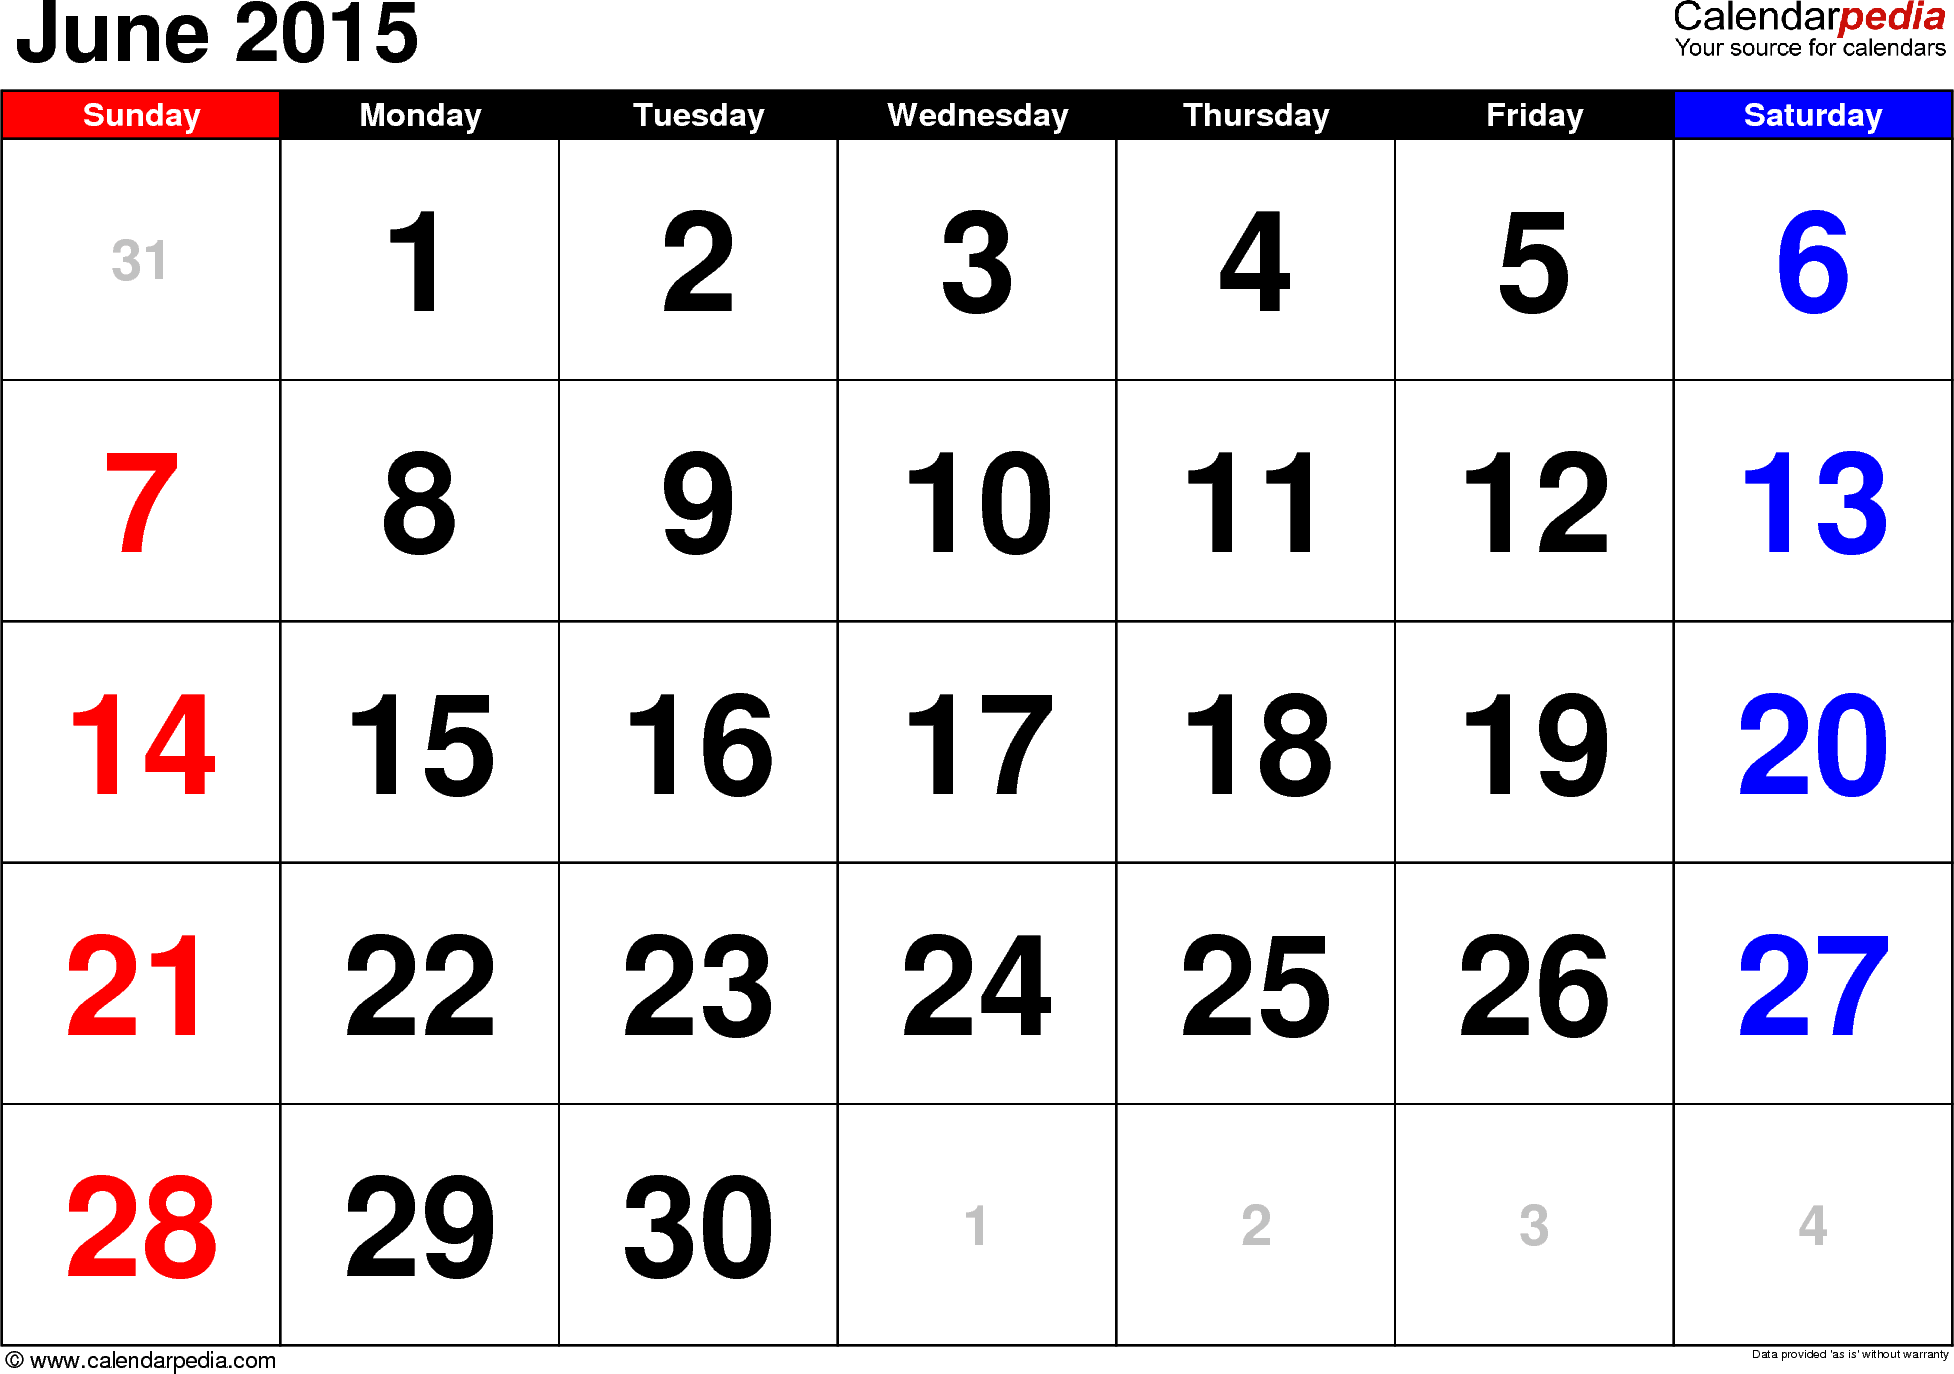 Calendar June 2015 : June calendars for word excel pdf